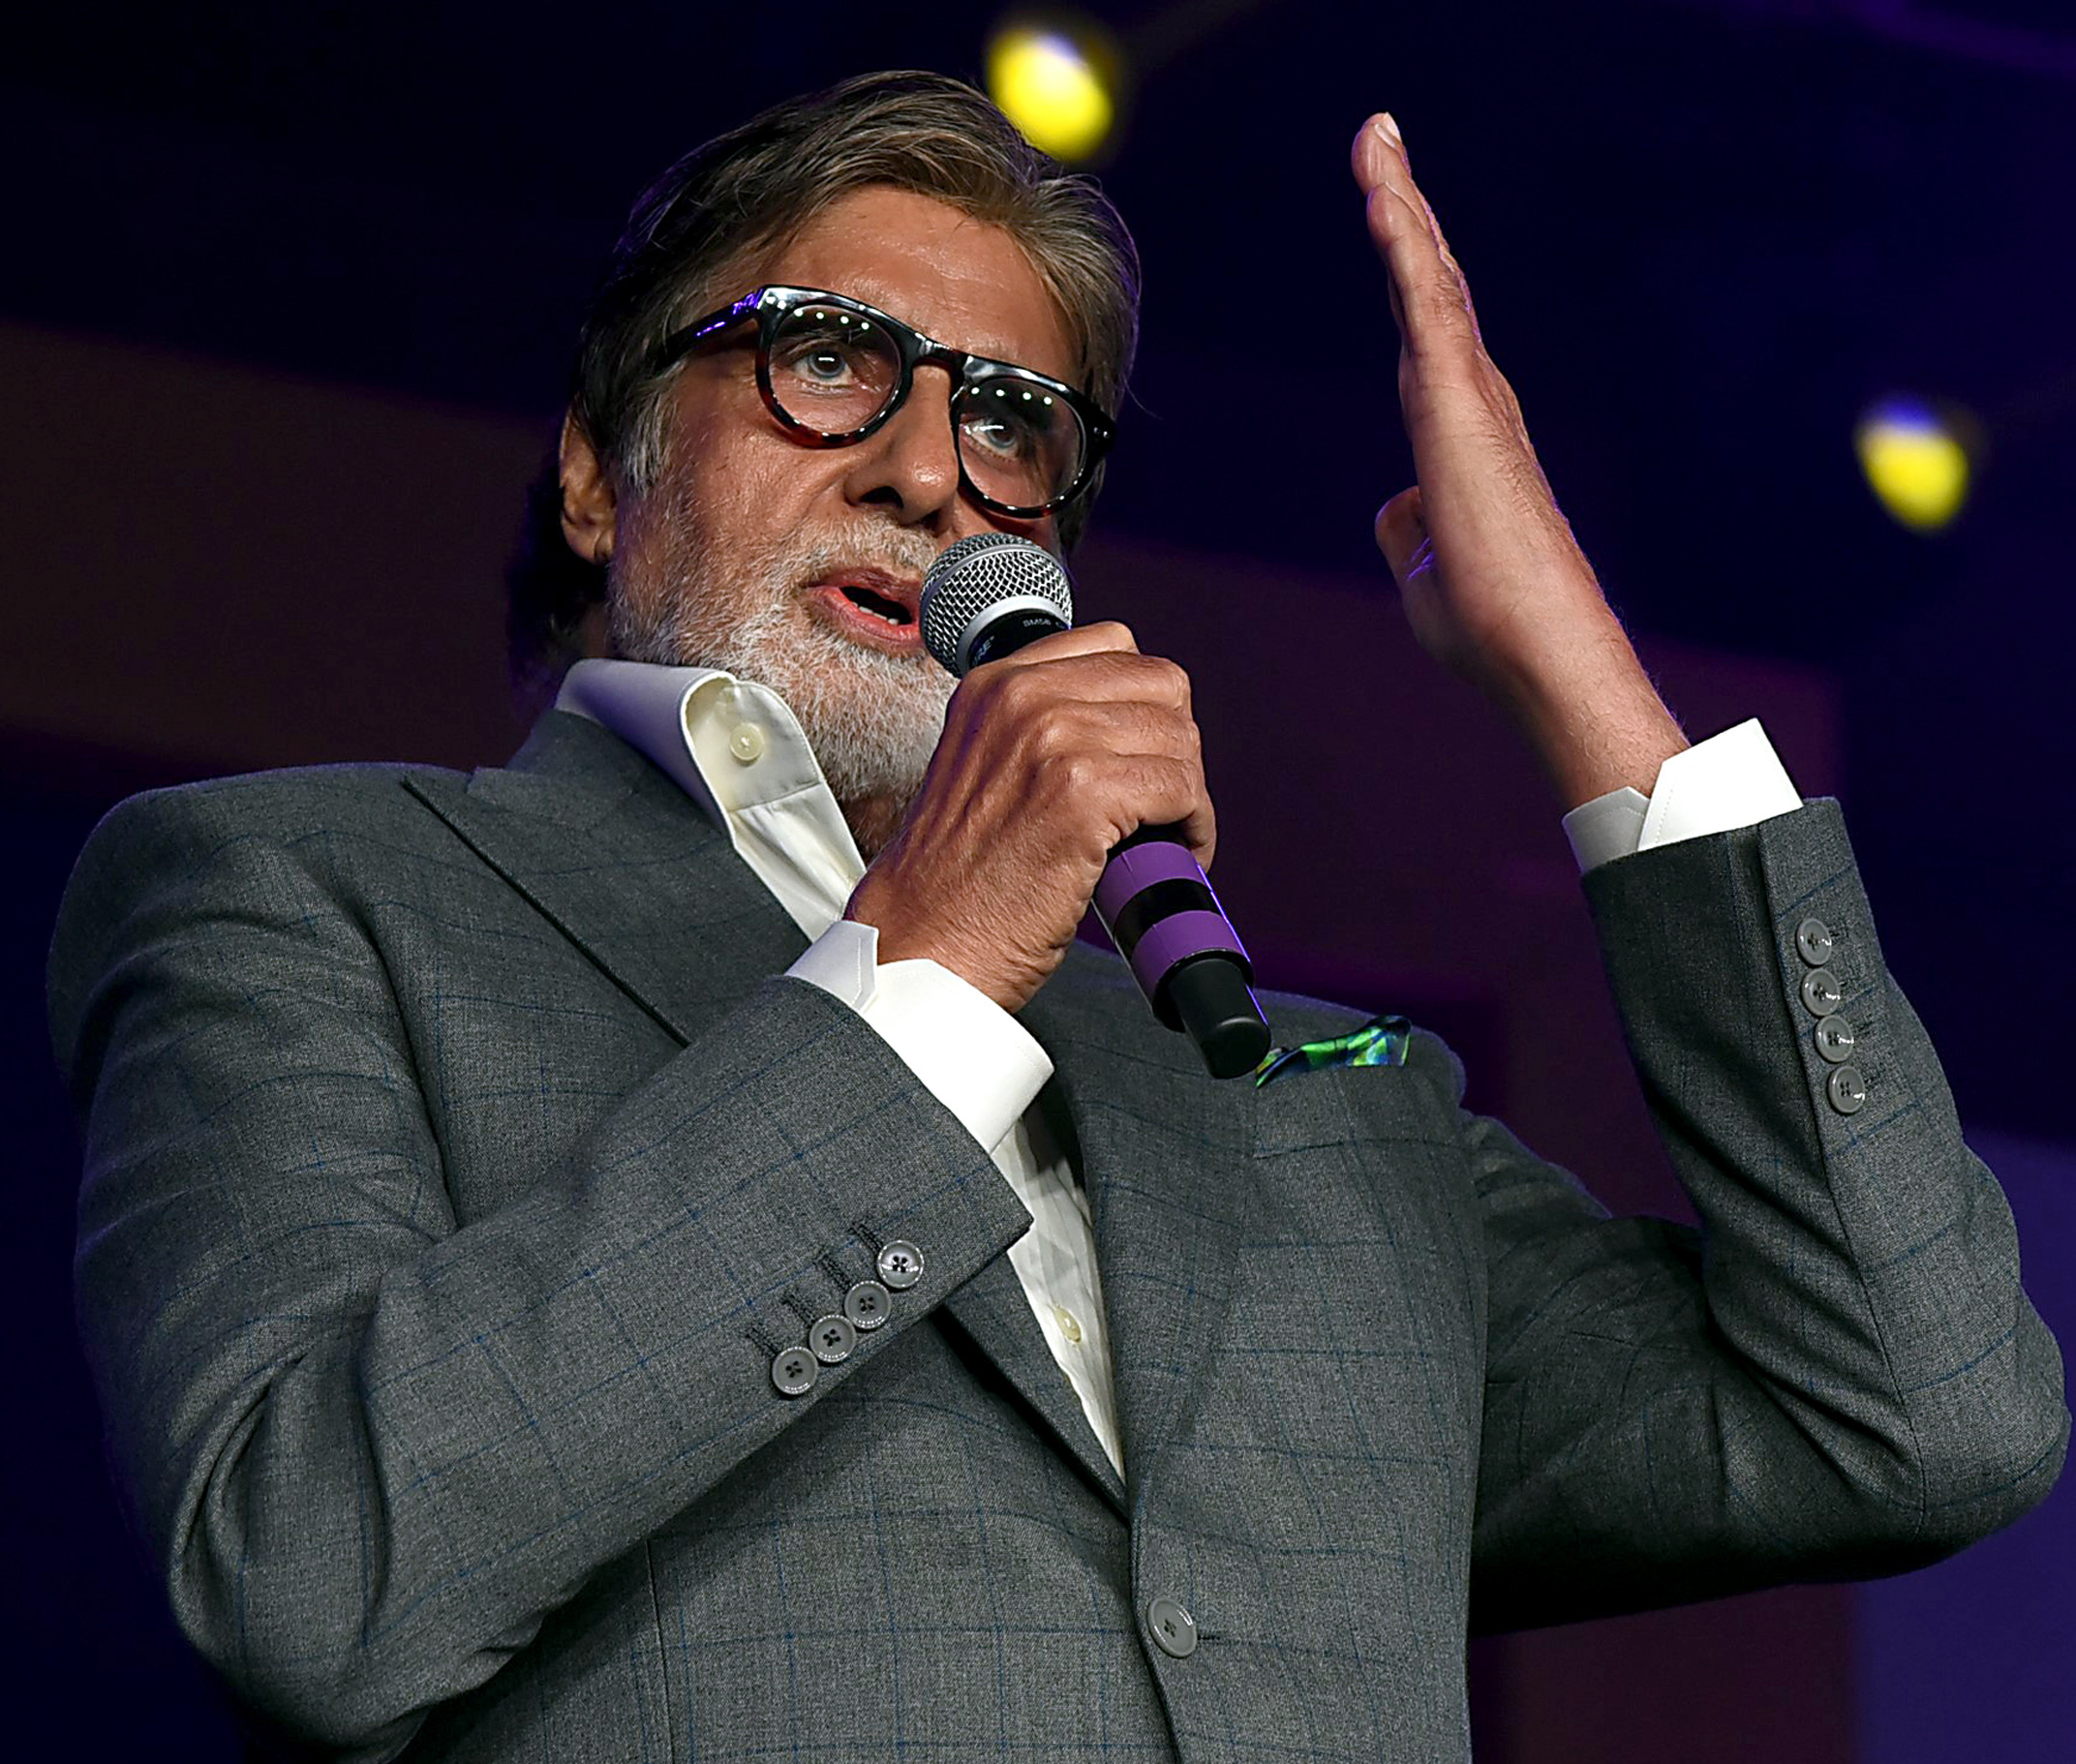 From elbow 'hi' to separate entry-exit points: How Amitabh Bachchan is shooting 'KBC' amid COVID-19